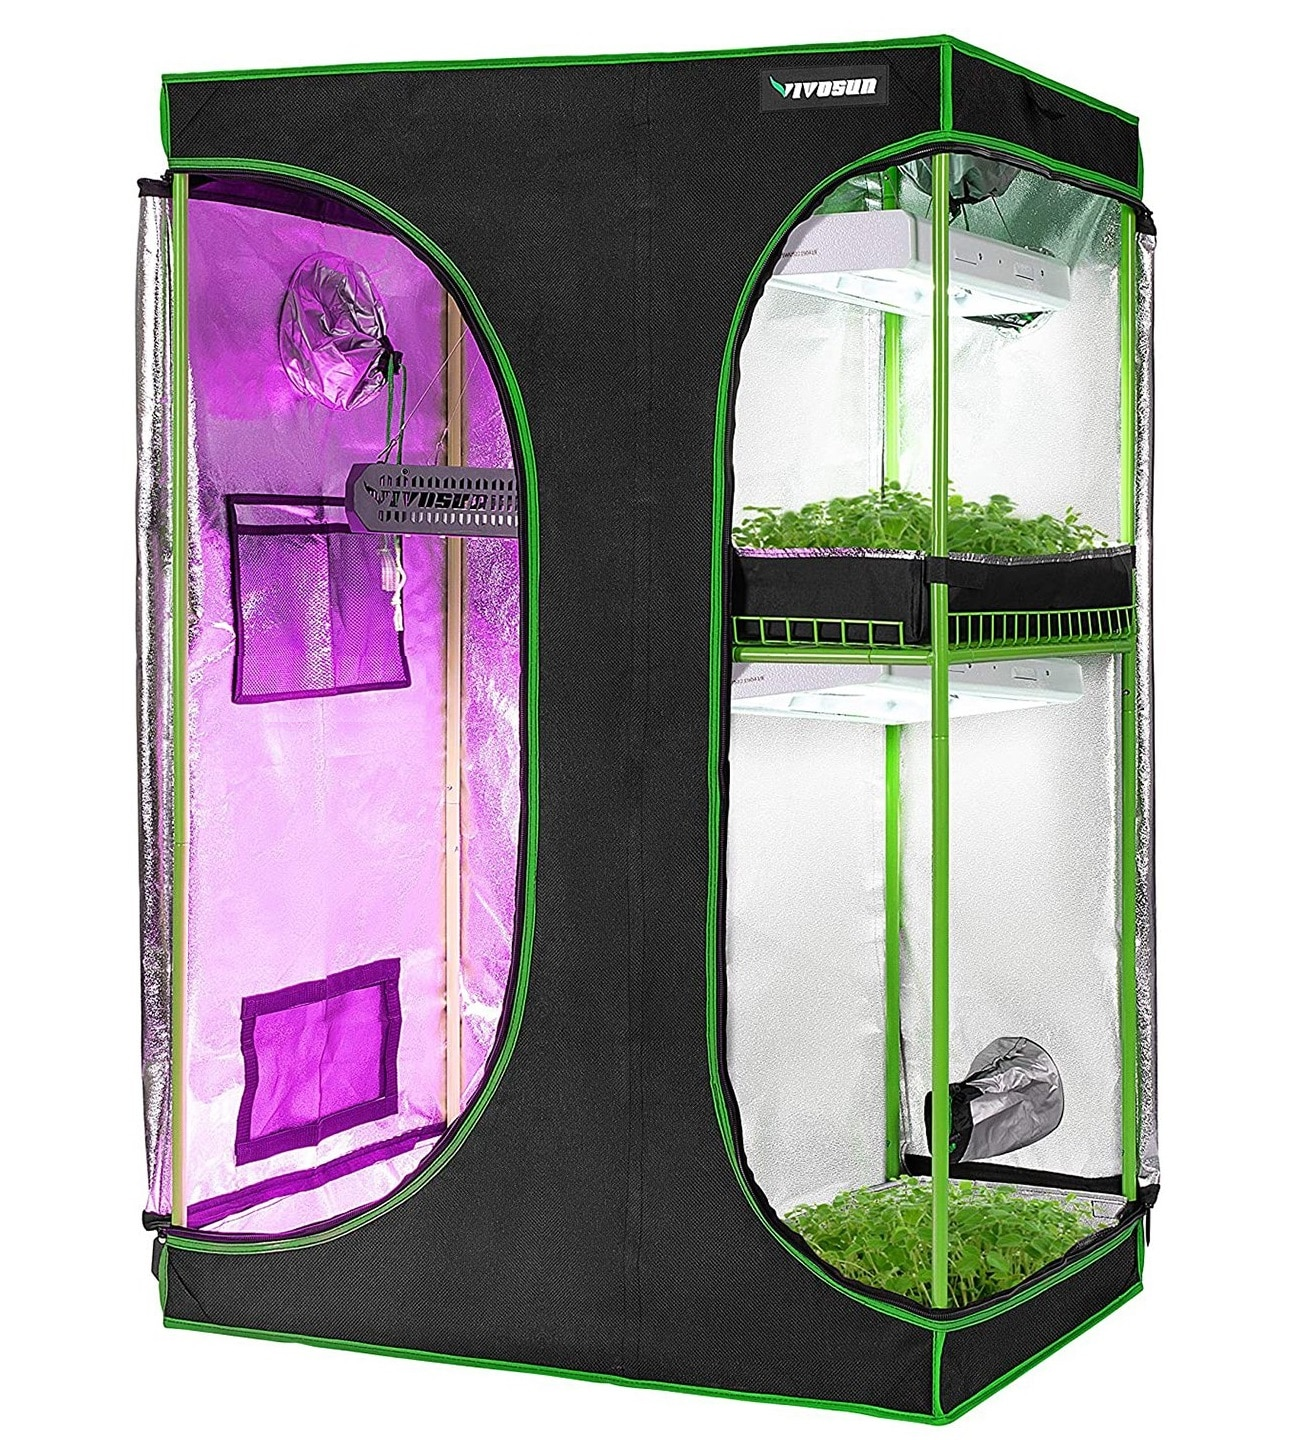 VIVOSUN 2-in-1 Grow Tent – Best for Growing Two Different Plant Types